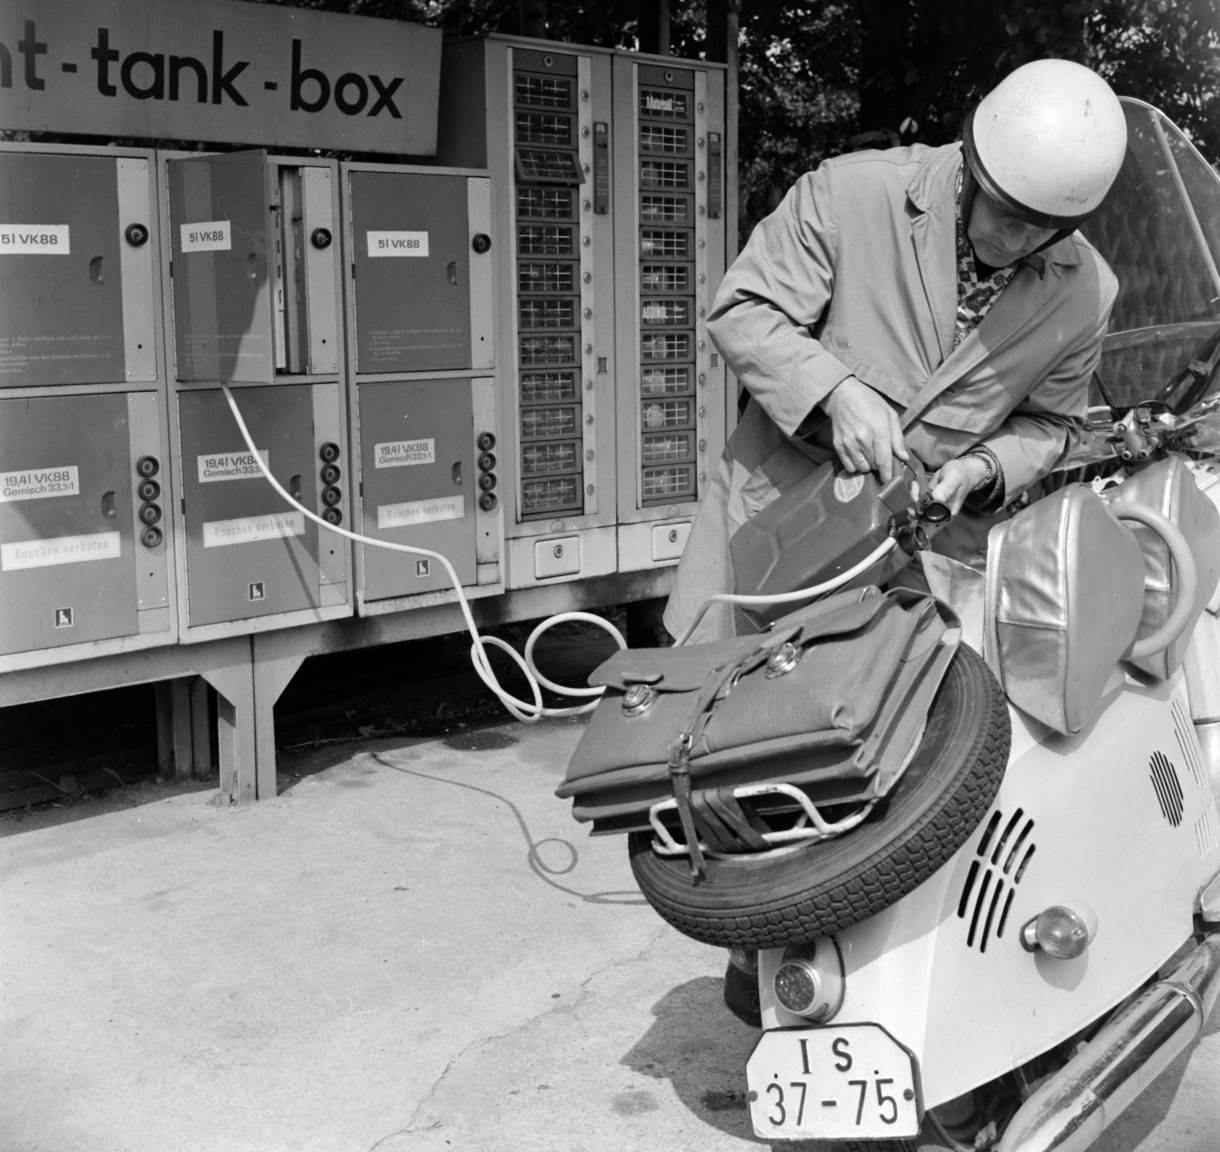 One of the brilliant inventions of the GDR was the tank-box, the self-service overnight petrol station. To use this, you had to purchase a key to a safe which enclosed a 5 litre can of gas. One key bought you five litres, two bought you ten, and so forth.